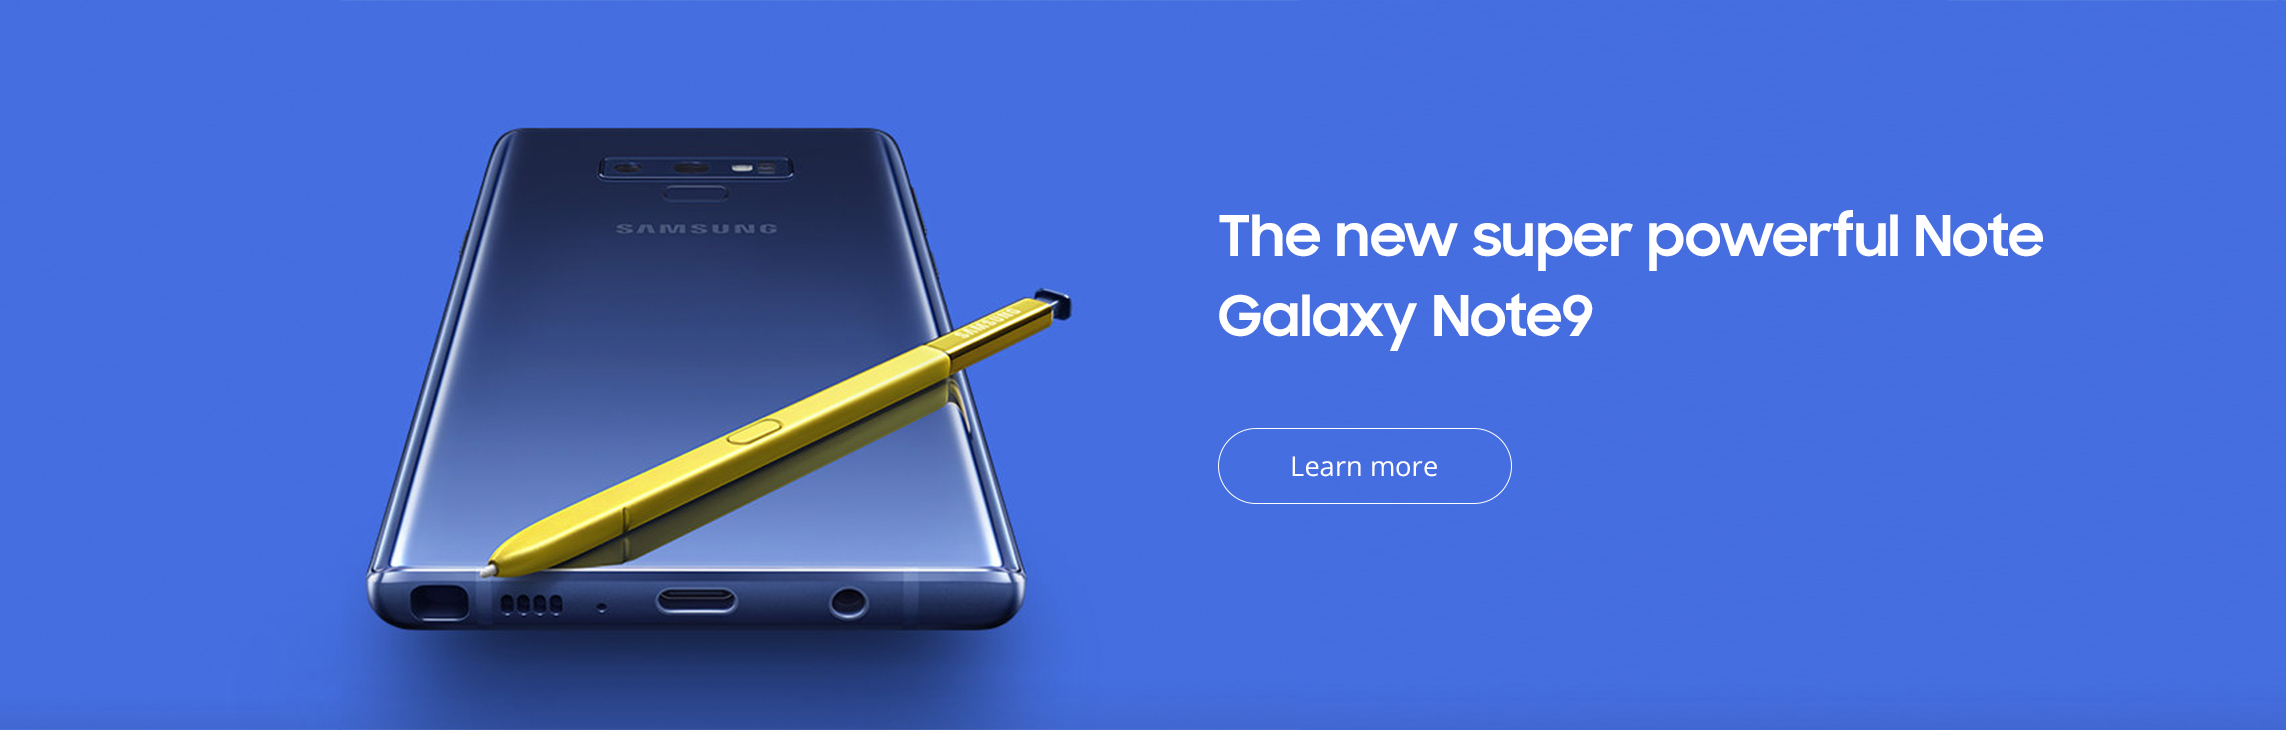 Samsung Galaxy Note9 from Verizon